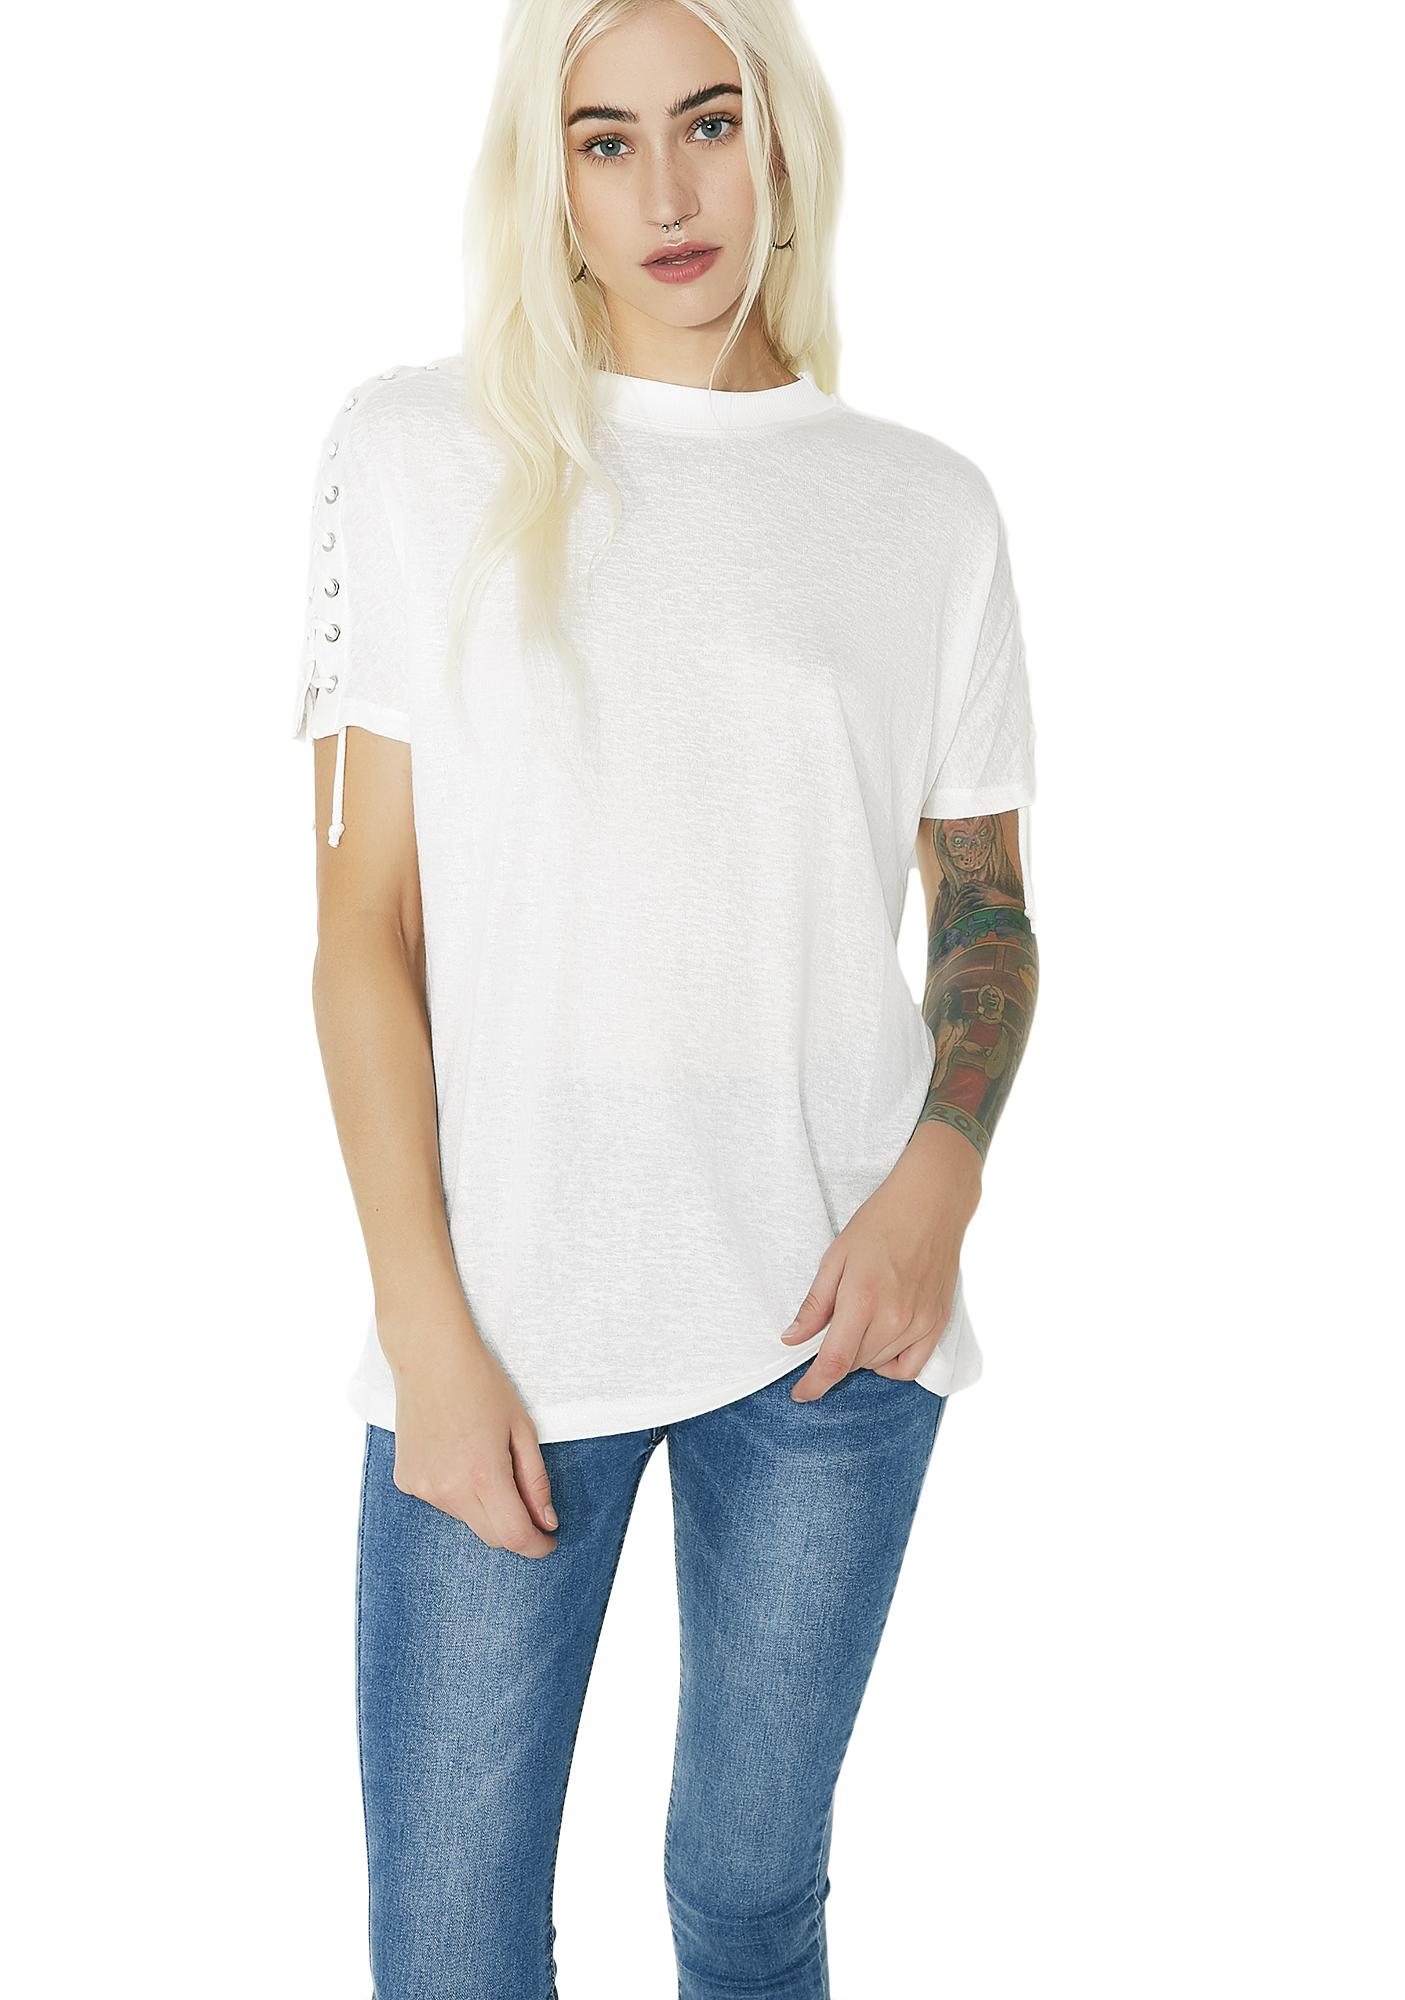 Fade Out Lace-Up Shirt